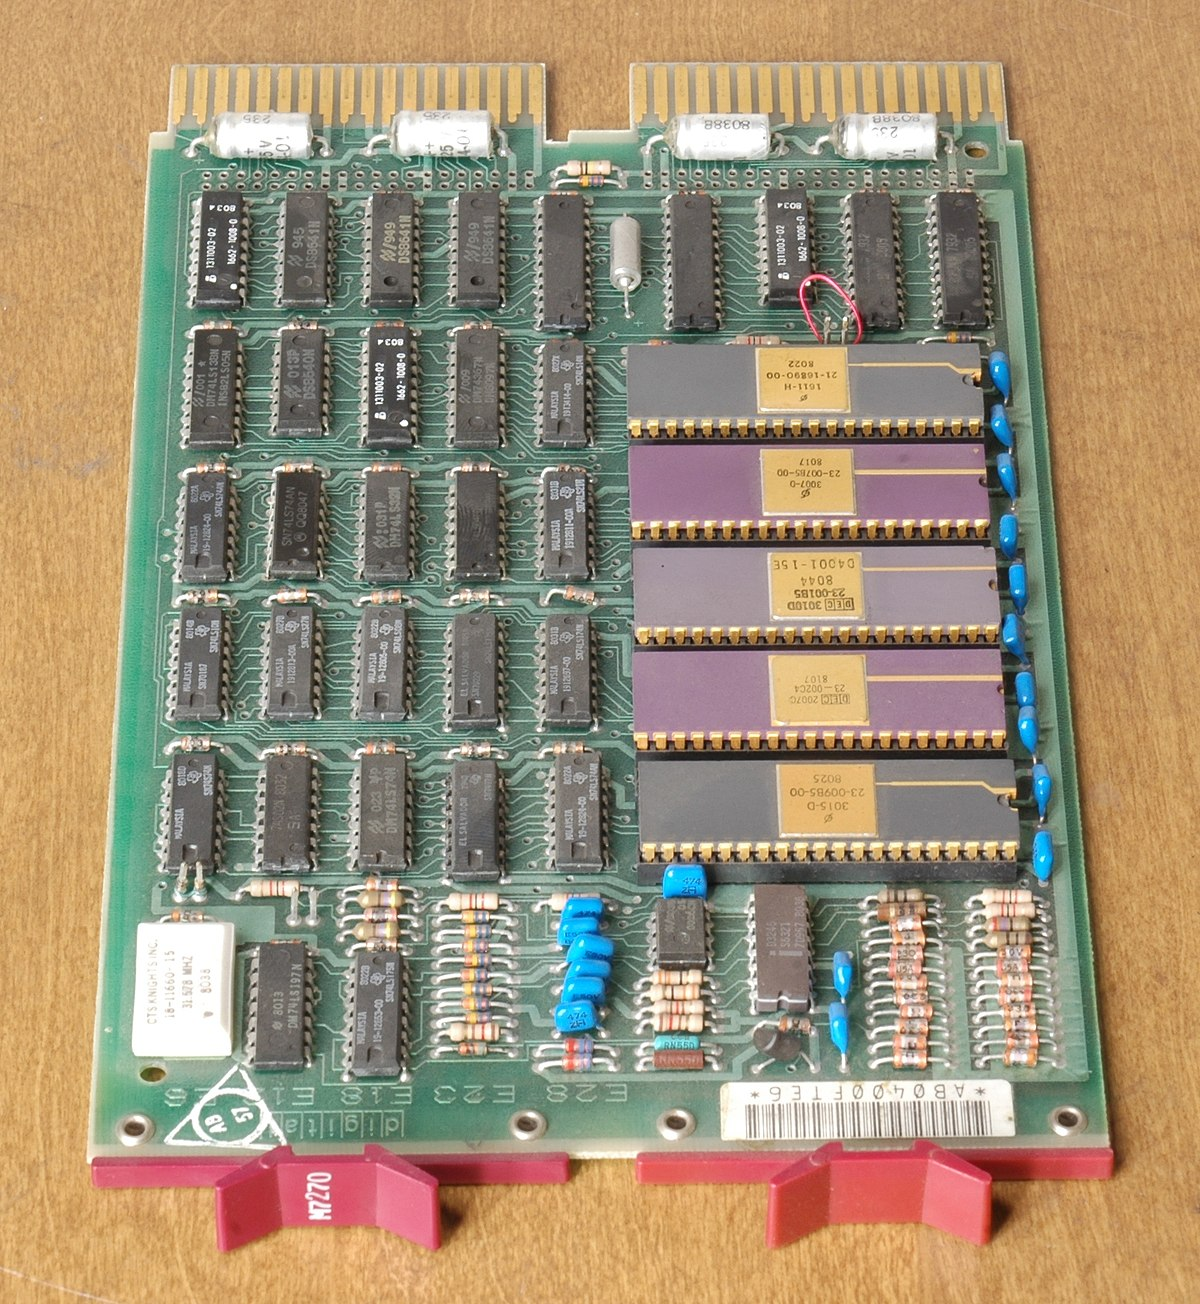 Computer Hardware Wikipedia Electronic Circuit Board With Processor Repair Boards Stock